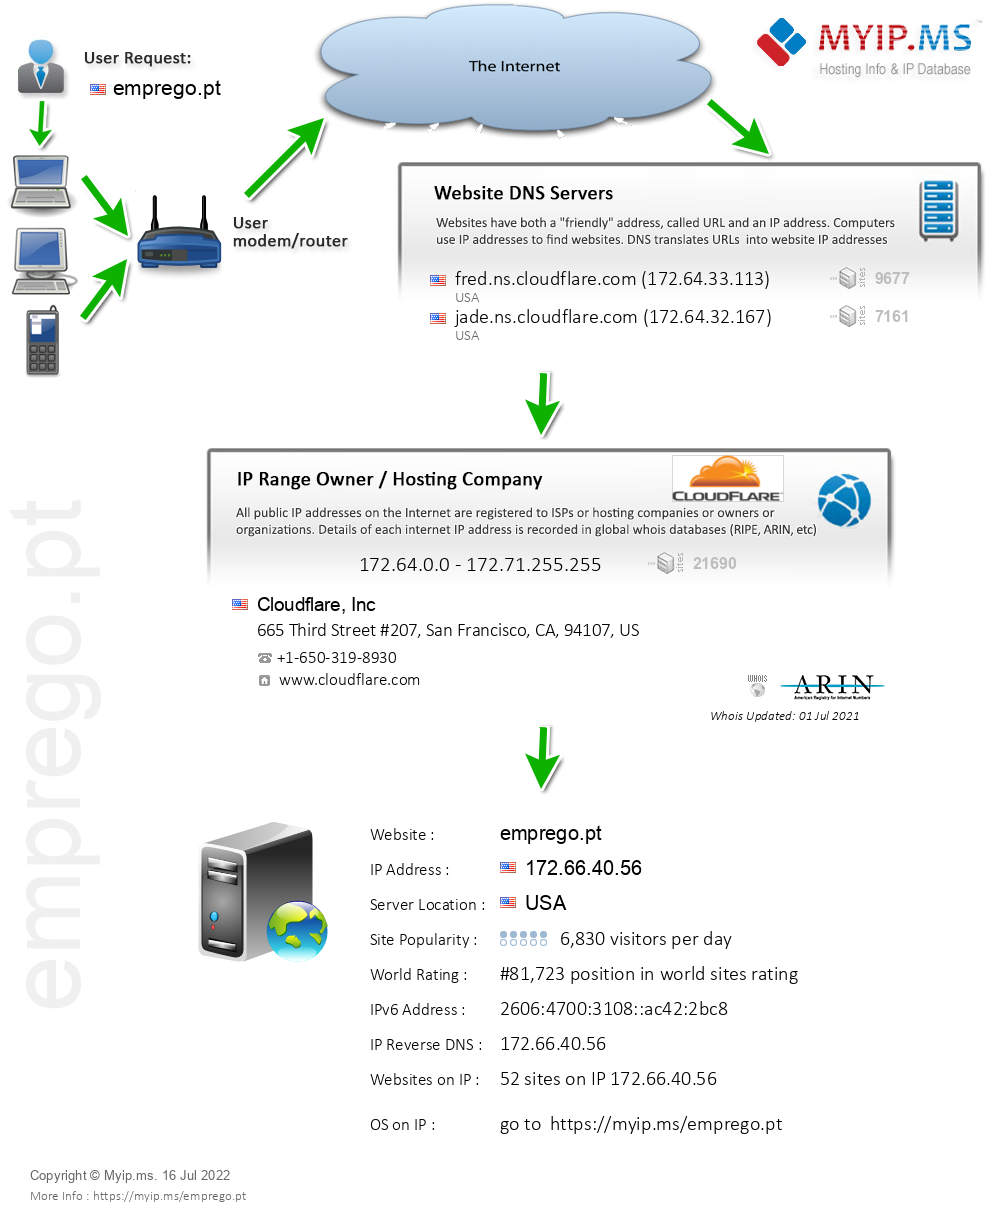 Emprego.pt - Website Hosting Visual IP Diagram